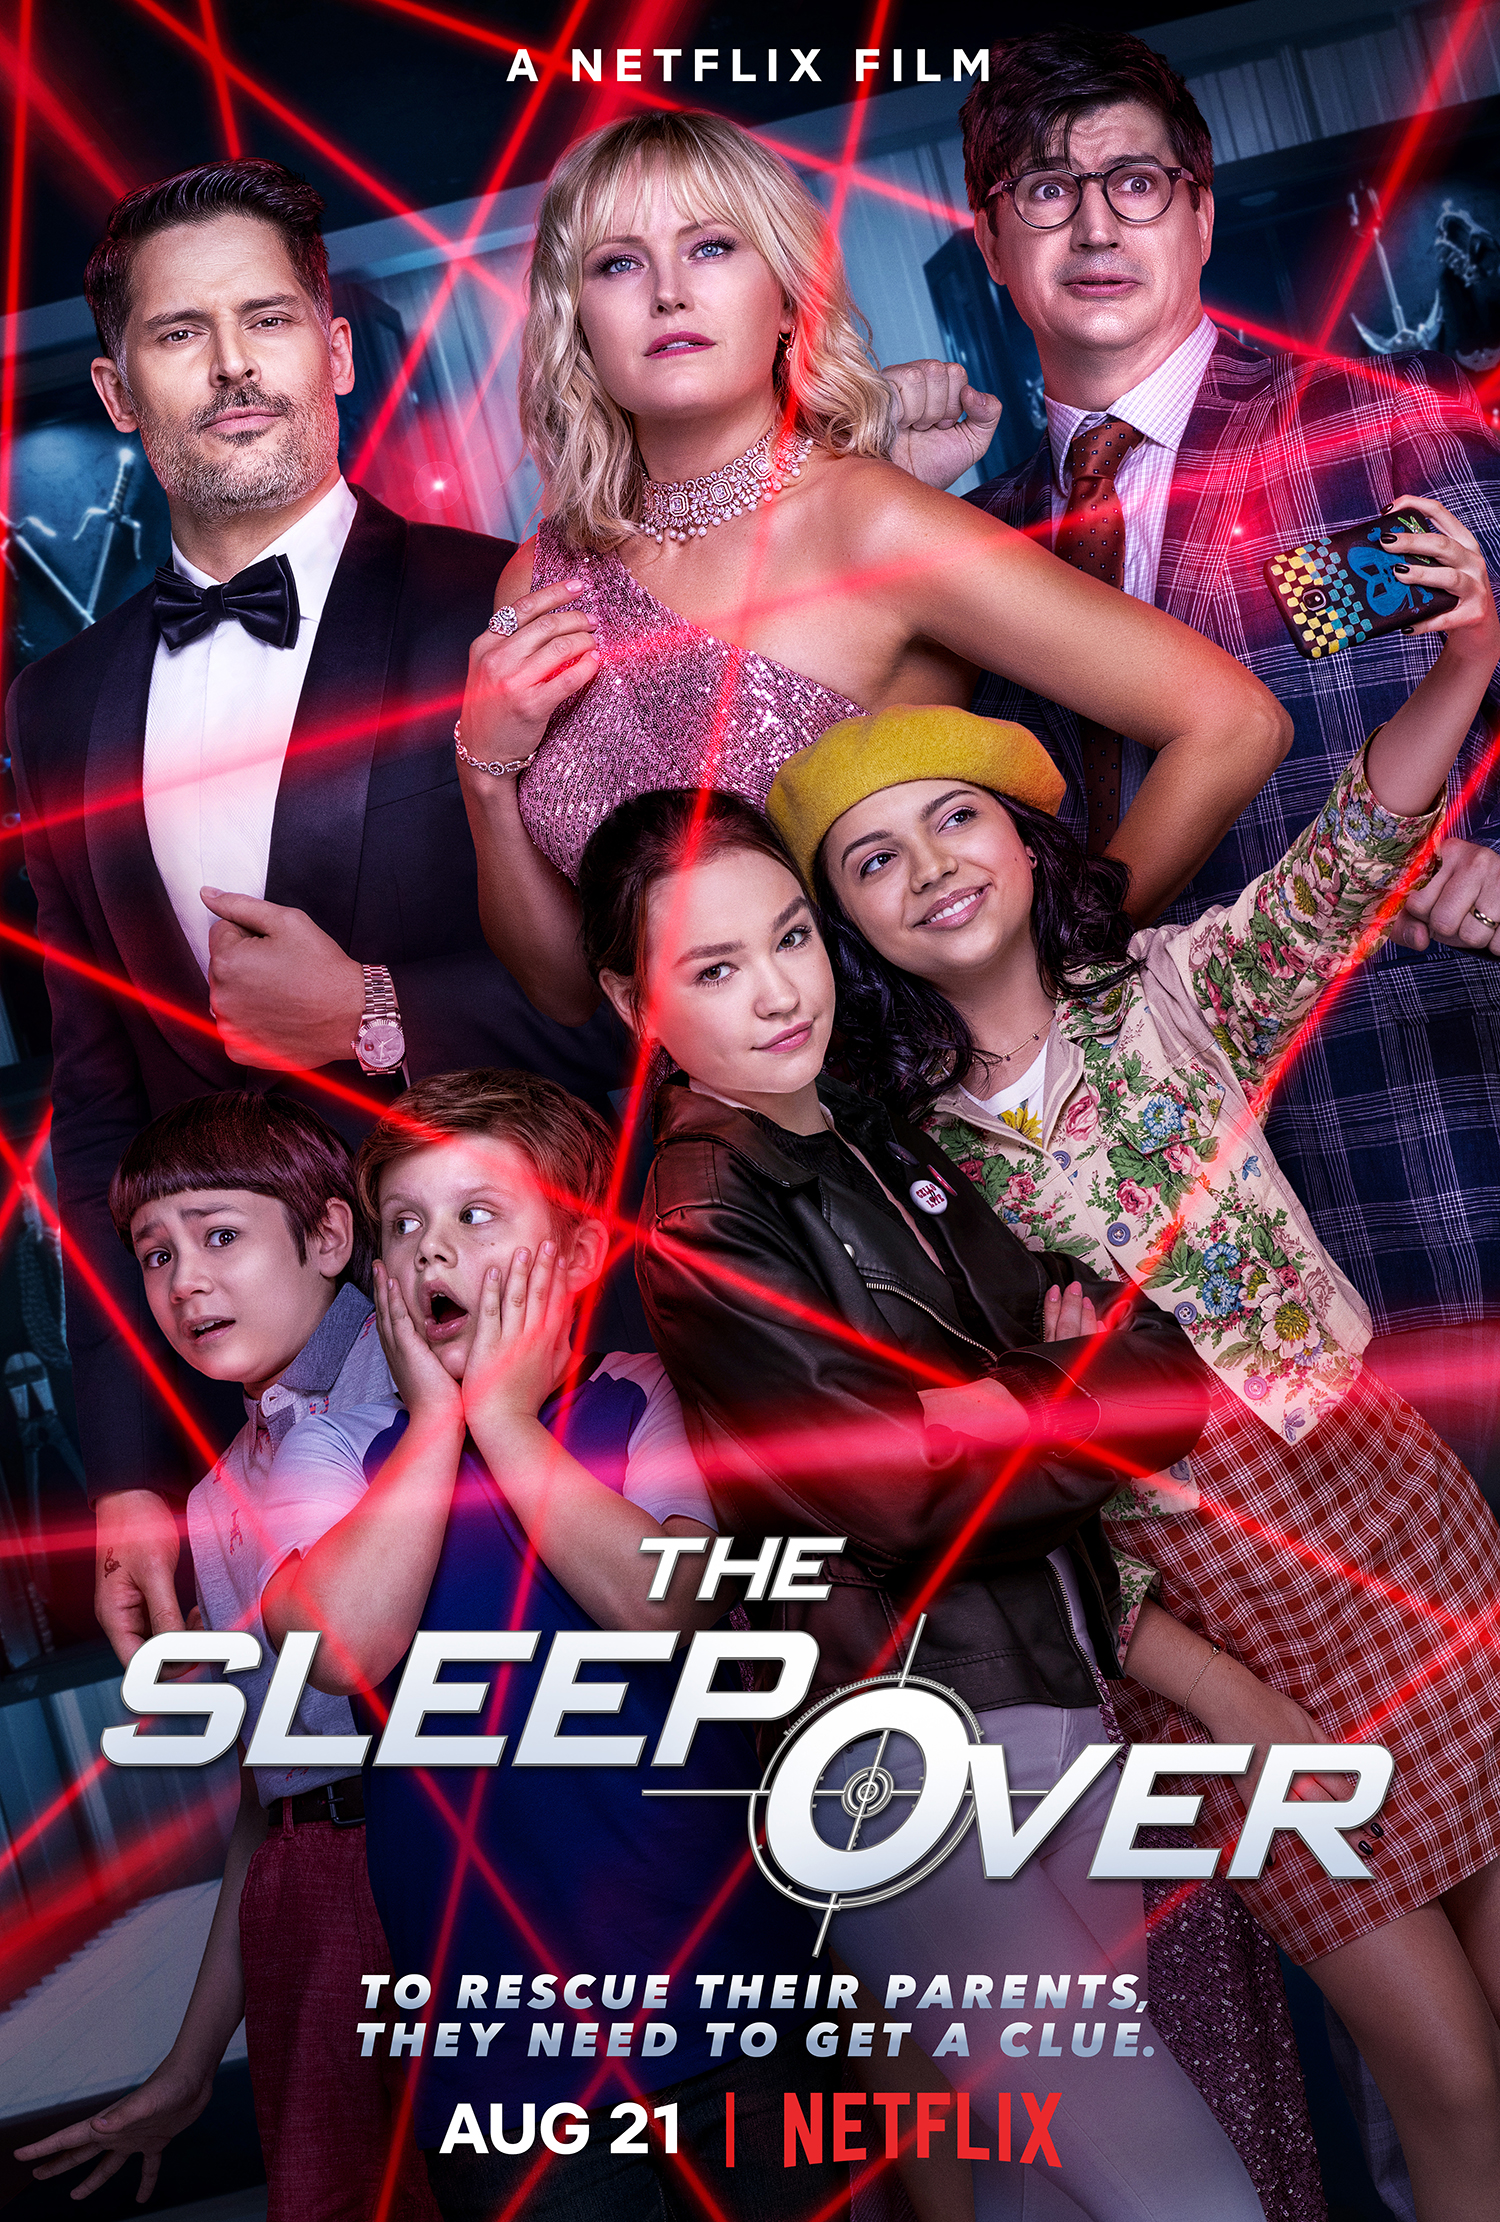 The Sleepover Cast interviews on Candypolooza.com